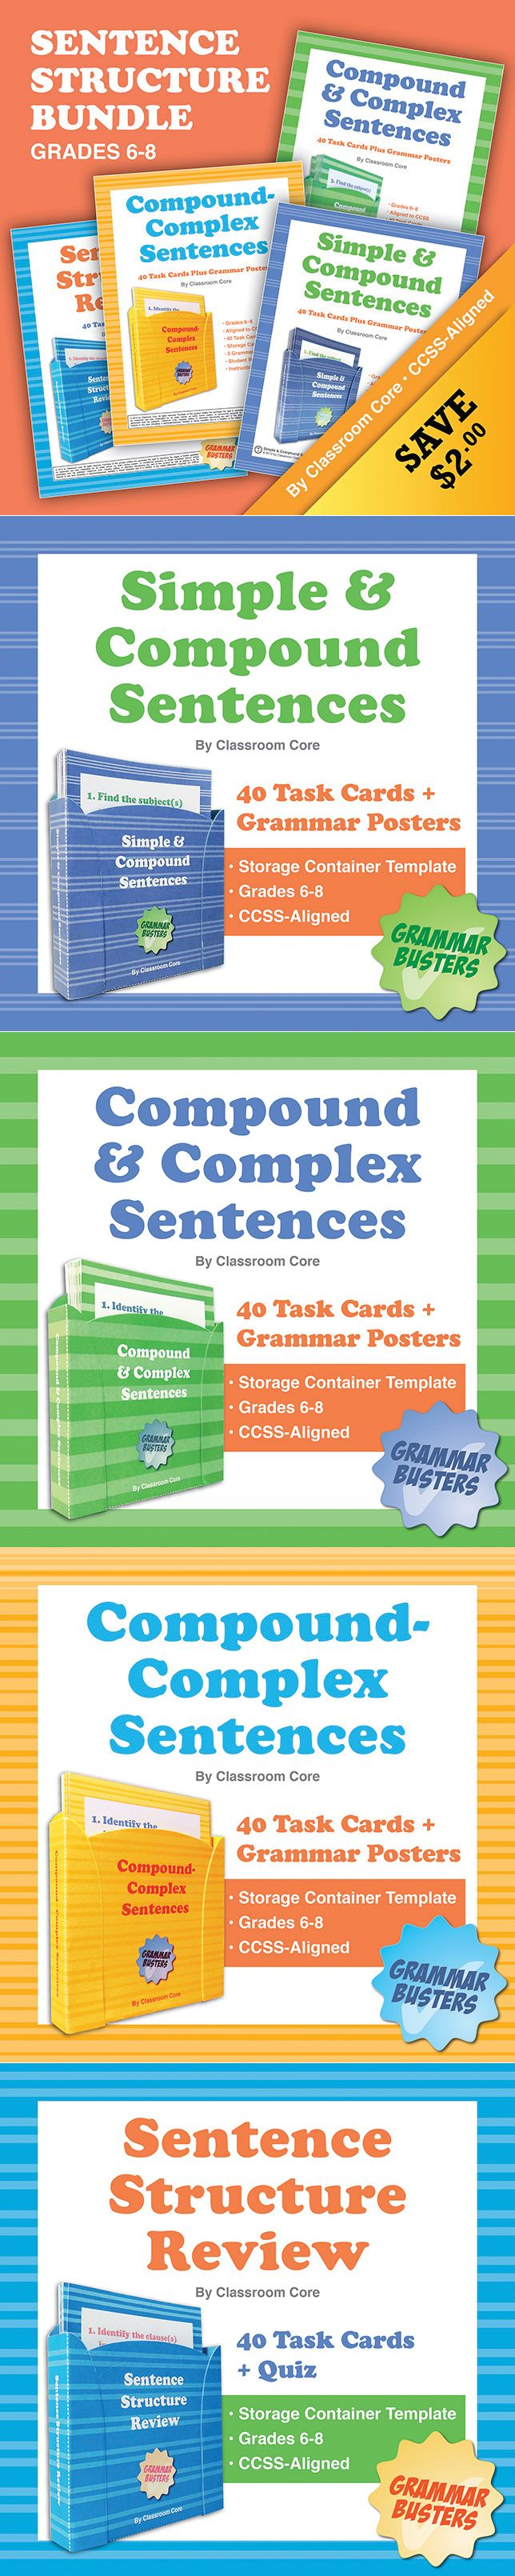 Sentence Structure Bundle: 160 Task Cards Plus Grammar Posters & Quiz. Save $2 when you purchase all of our sentence structure task card products together! This bundle includes four sets that feature simple, compound, complex, and compound-complex sentence task cards, instructions, and posters. All together, the bundle includes 160 task cards, 9 grammar posters, a review quiz, and four build-your-own storage containers for fun and convenient organization of your cards! $